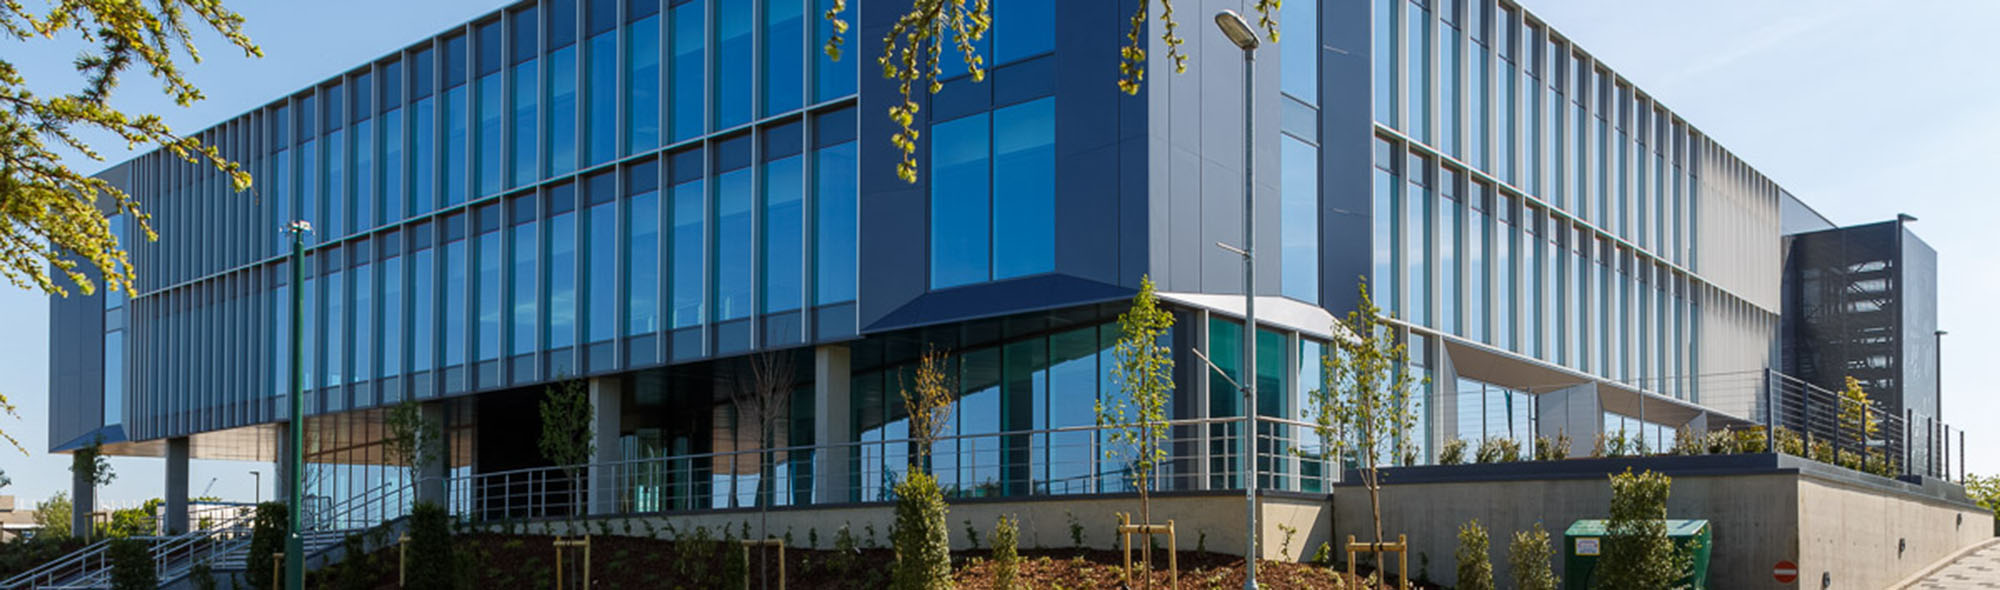 22 Cambridge Science Park